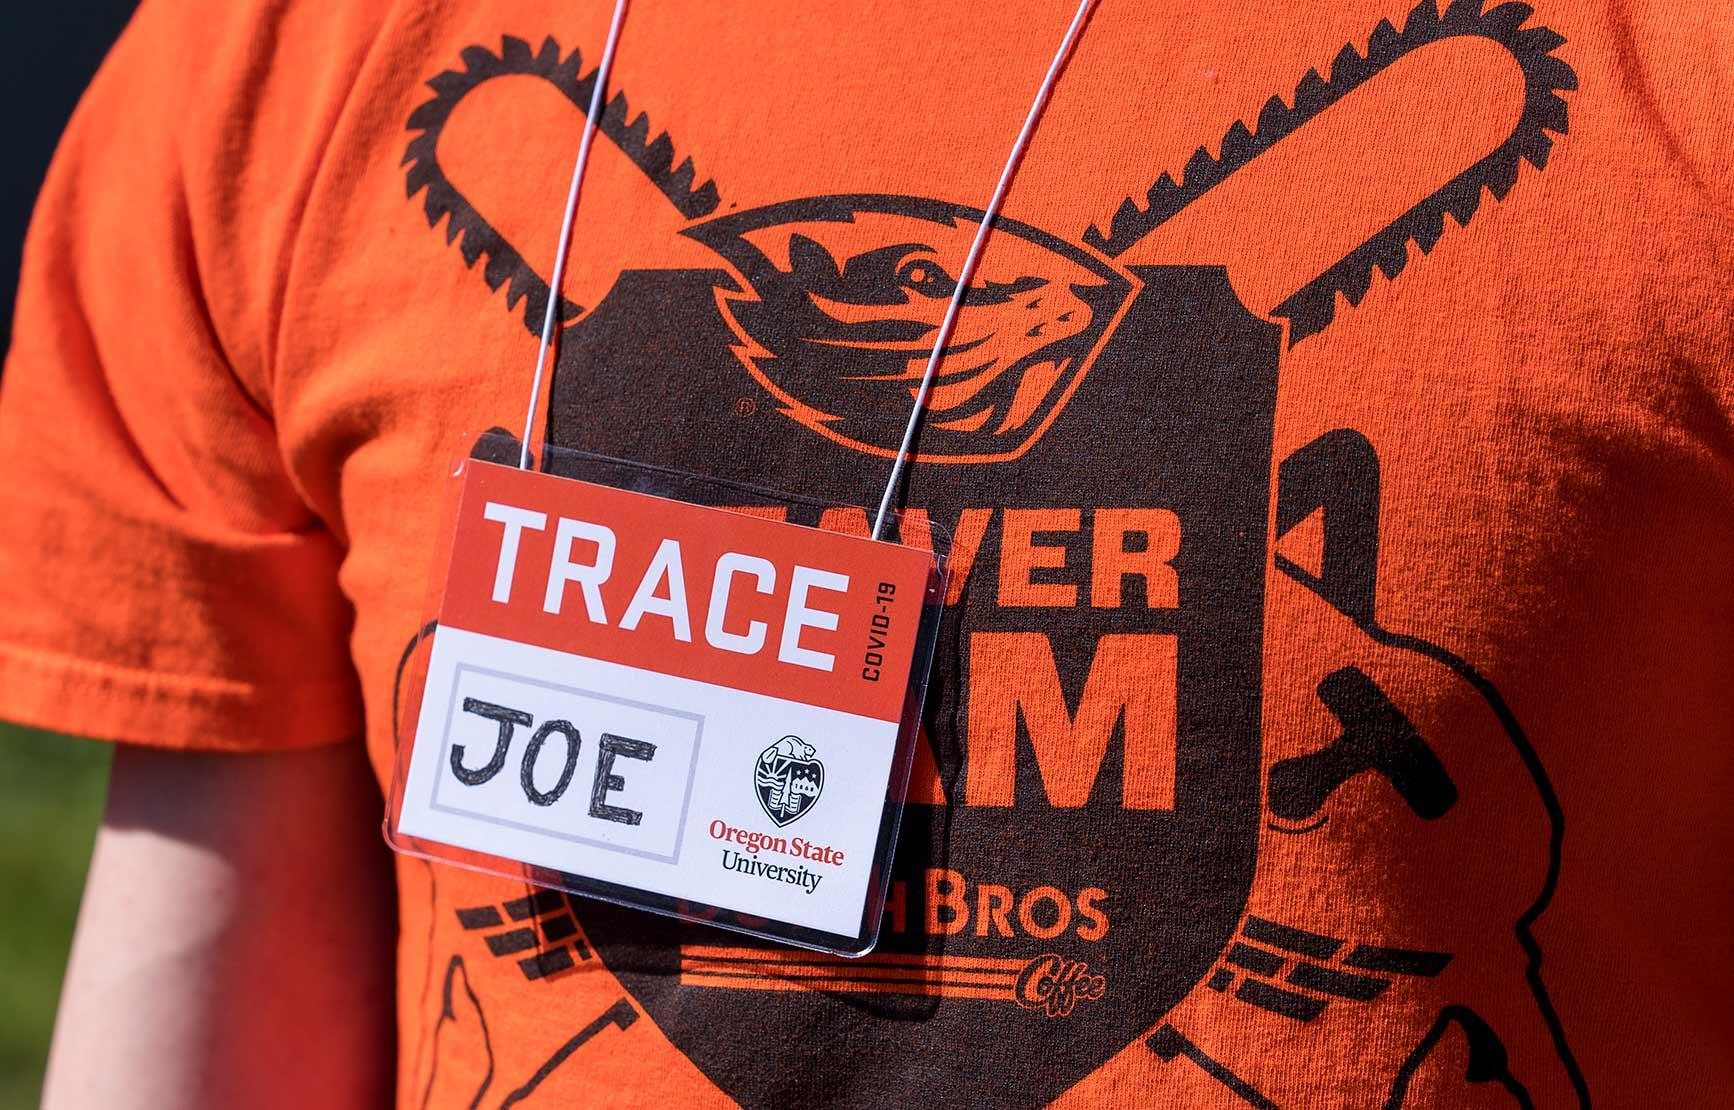 Person named Joe wearing a TRACE name tag